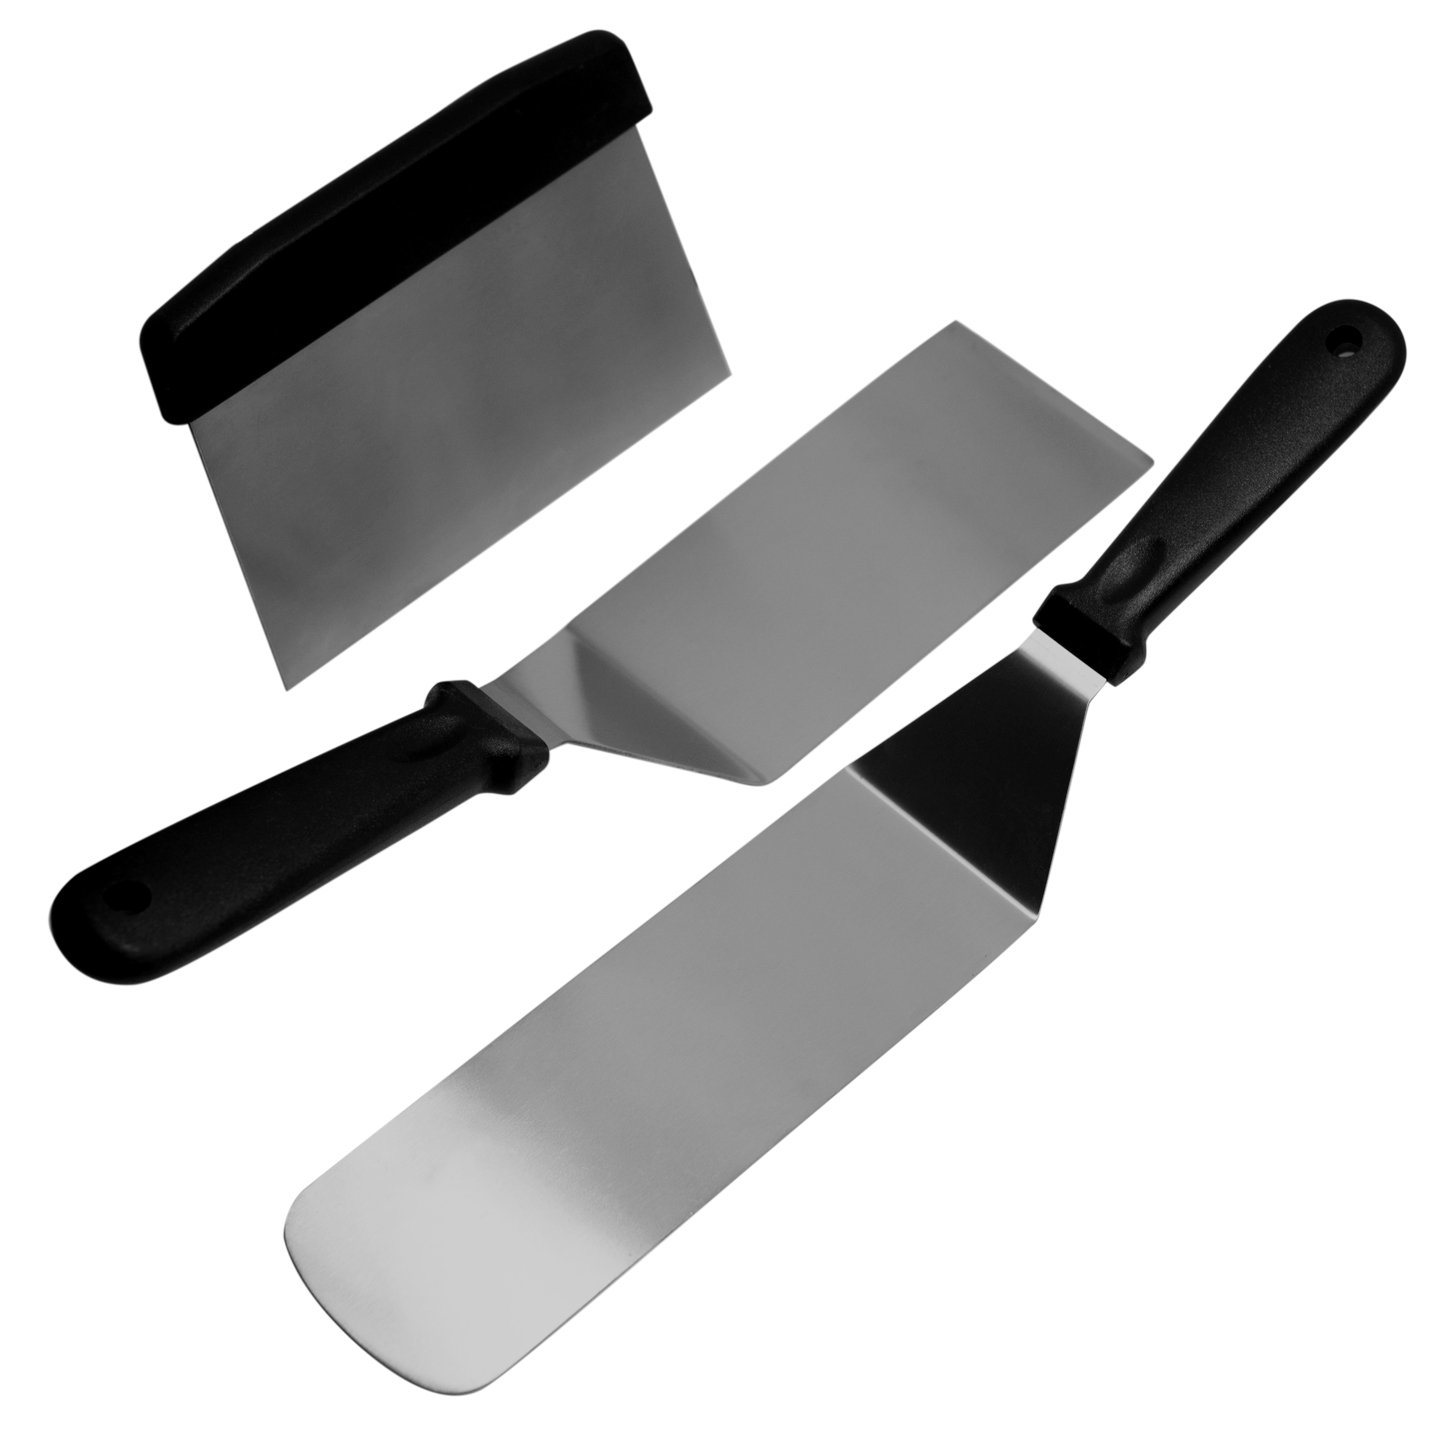 China 3piece Stainless Steel Flat-Top Spatula and Scraper ...